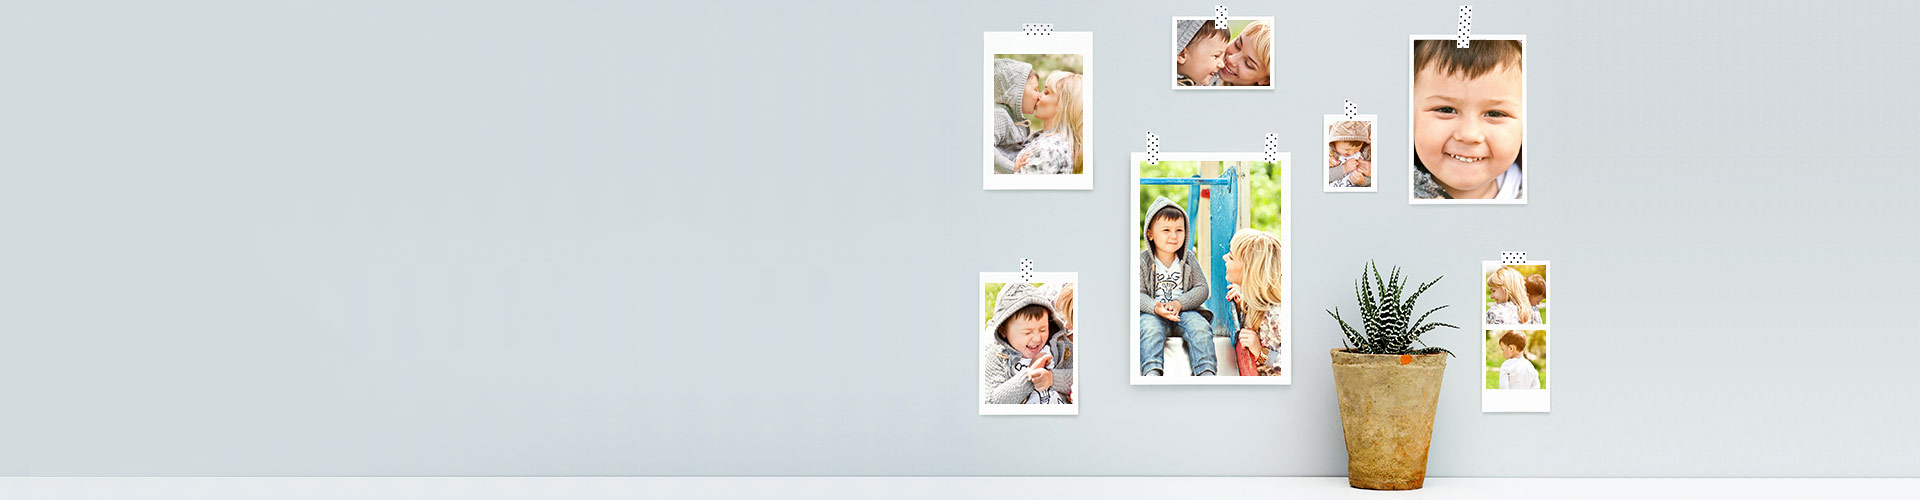 PHOTO PRINTS WITH THE MARK OF PROFESSIONAL-QUALITY